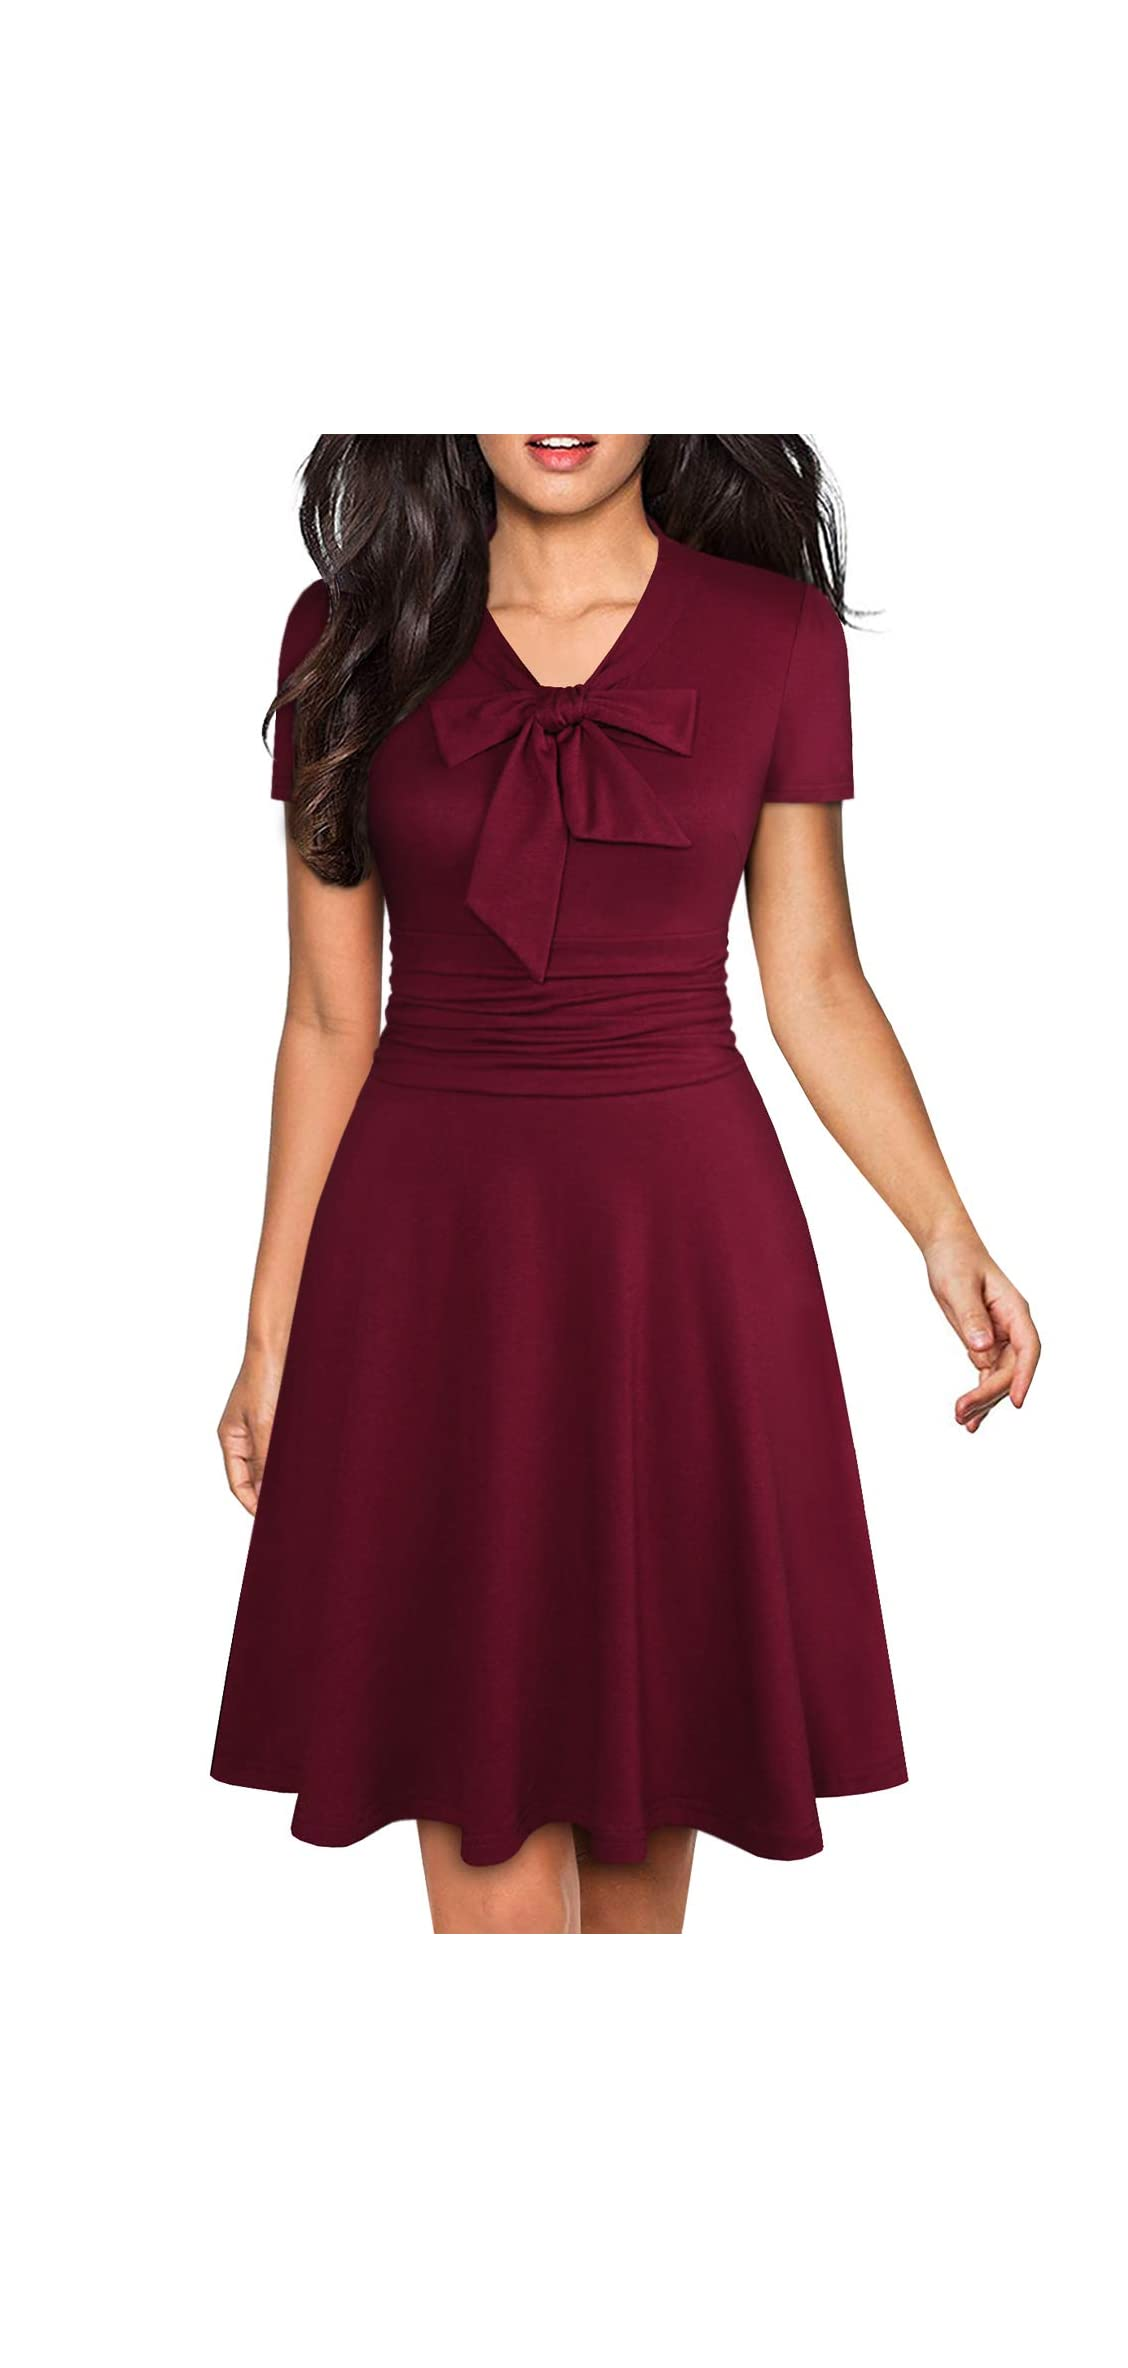 Women's Elegant Bow Tie Swing Casual Party Dresses Ruched